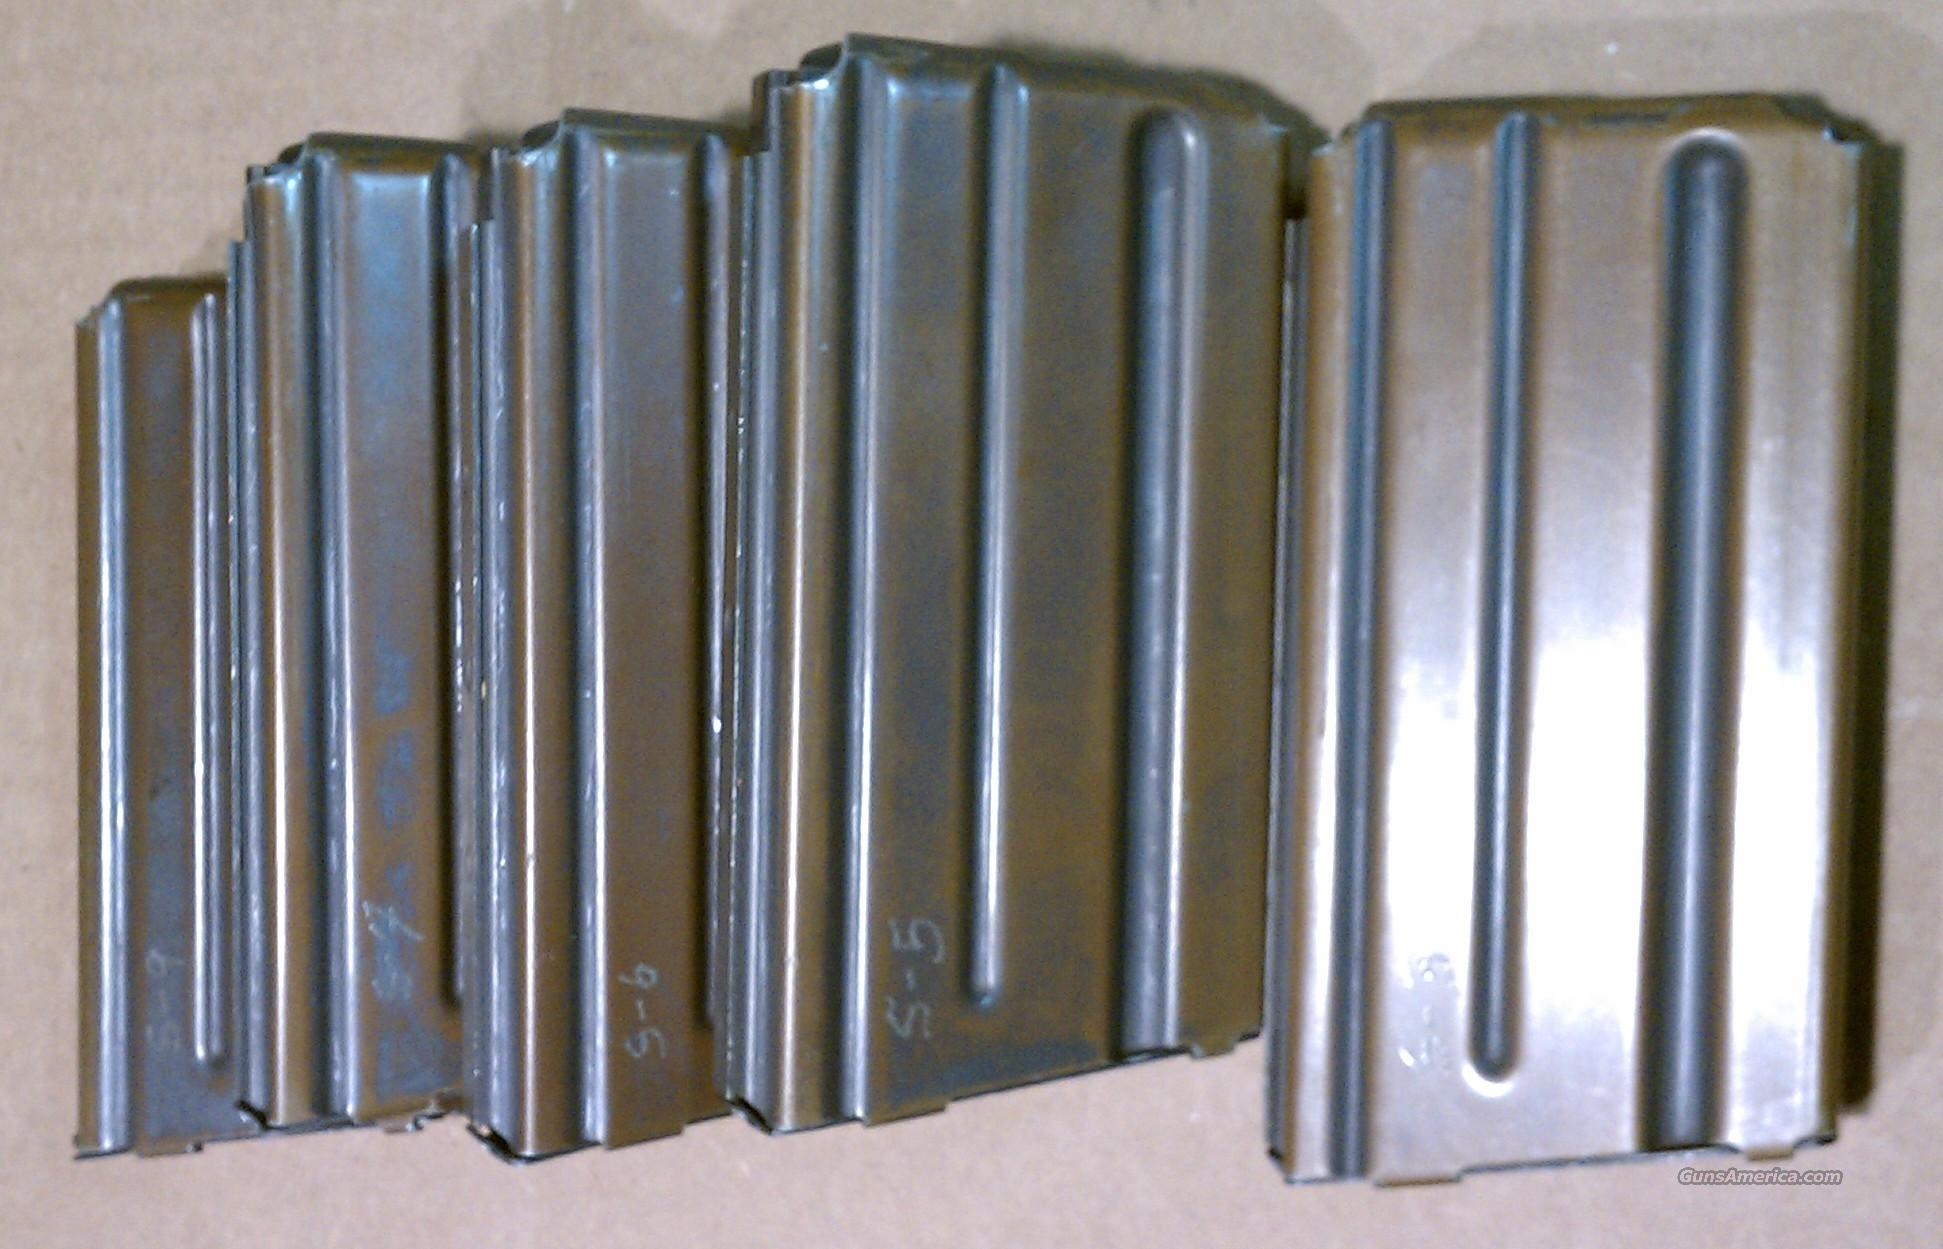 FOUR PRE-BAN COLT FACTORY 20-round AR-15 mags   Non-Guns > Magazines & Clips > Rifle Magazines > AR-15 Type